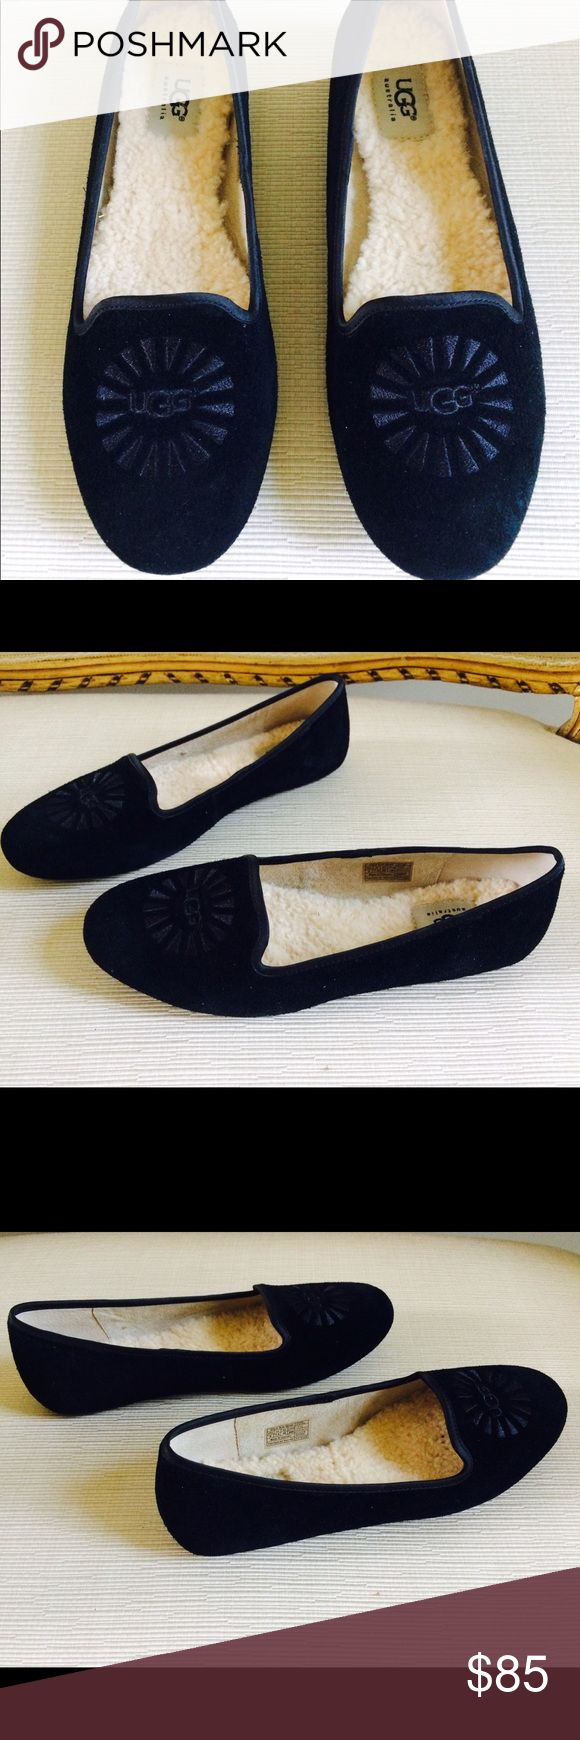 UGG AUSTRALIA Alloway Black Slippers UGG AUSTRALIA Alloway Black Slippers. Size 9. Upper leather. Lining: leather and genuine sheepskin. Outsole: rubber. Satin trim. New with Box. UGG Shoes Slippers